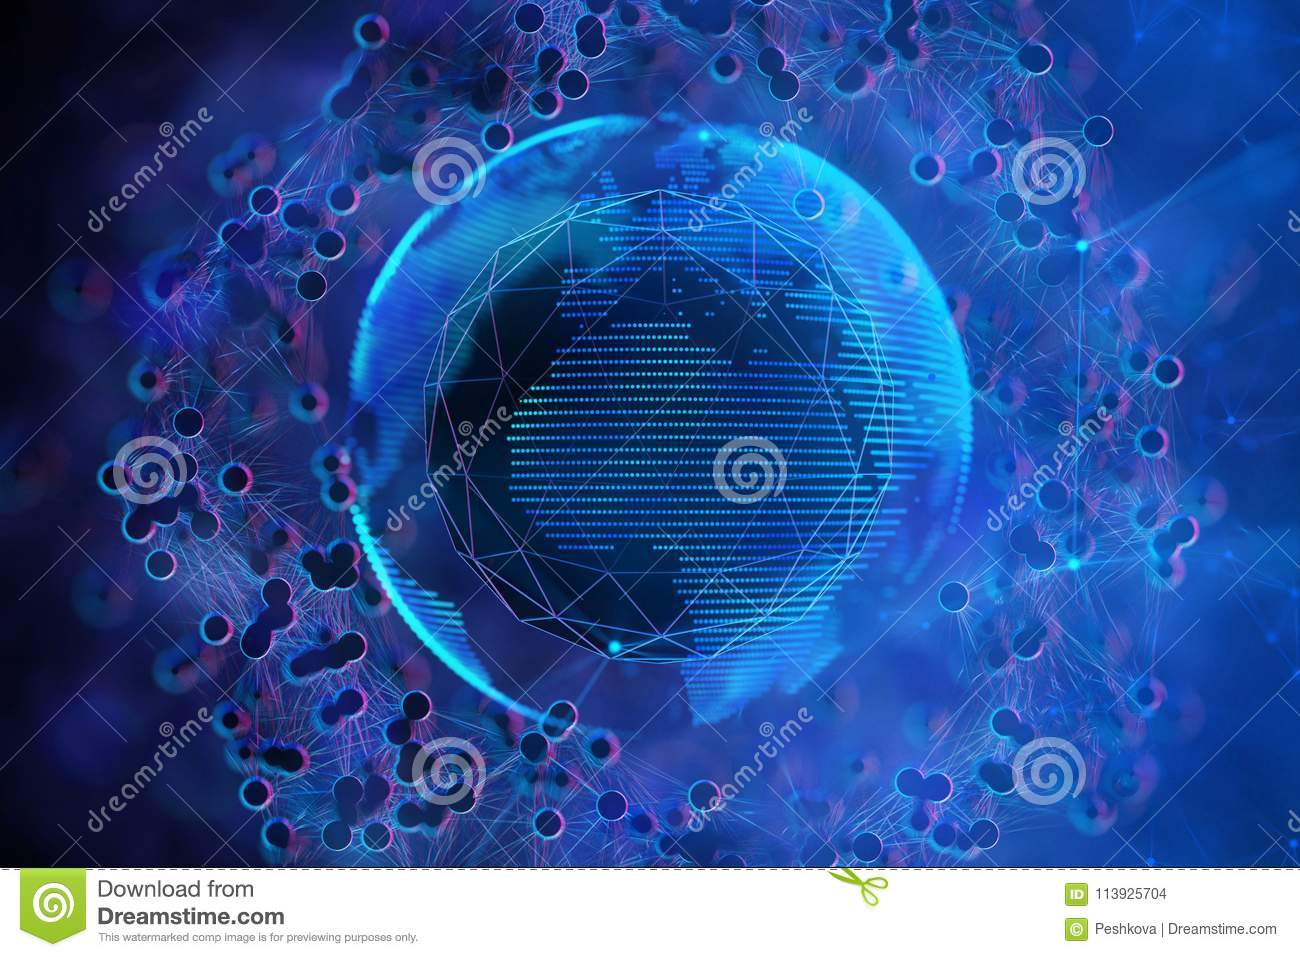 abstract globe bacteria wallpaper stock illustration - illustration